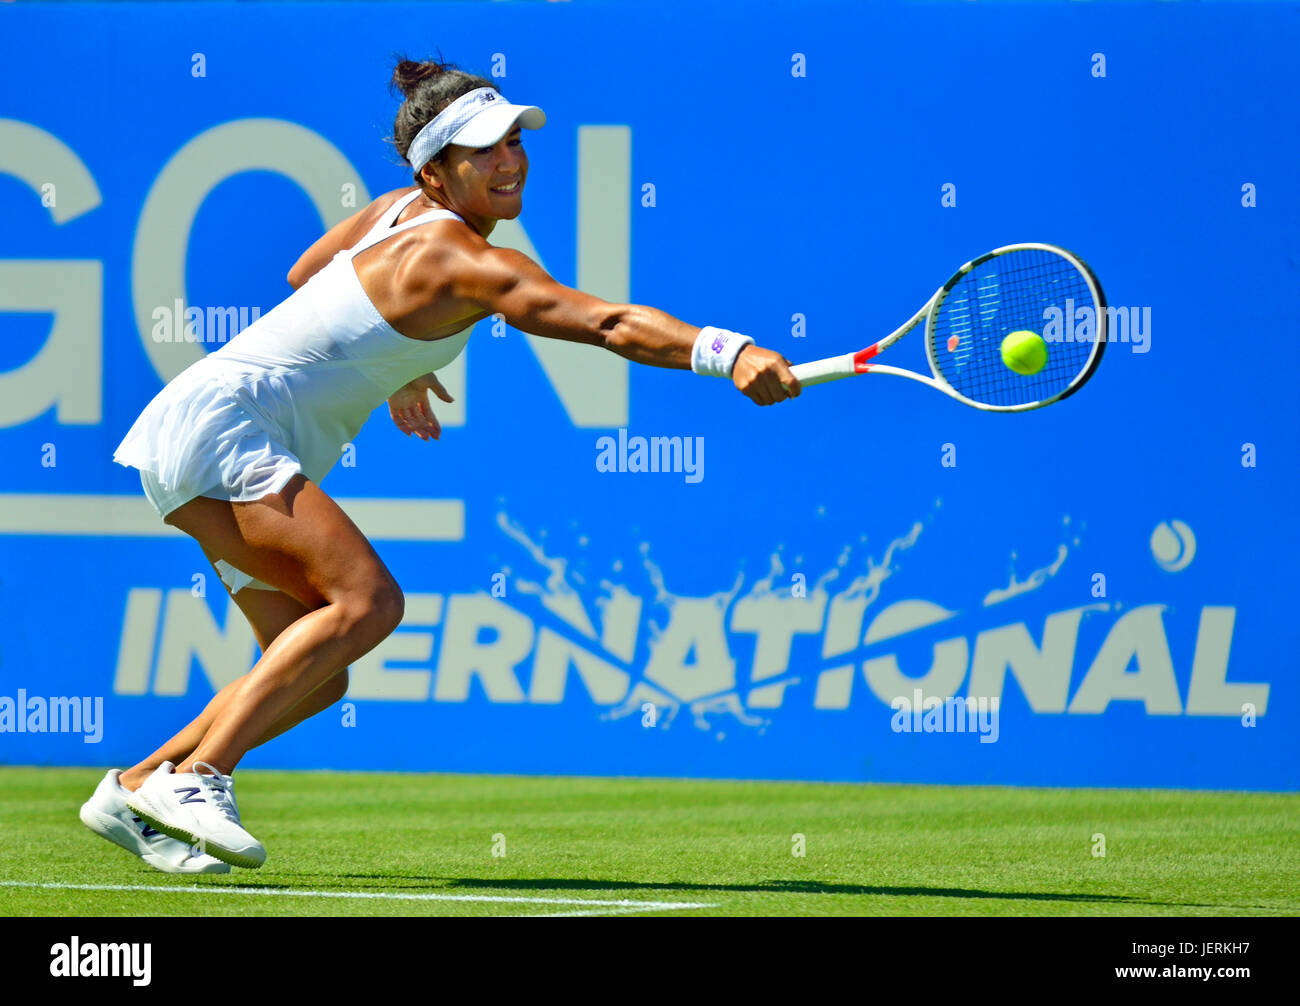 Heather Watson (GB) playing a backhand on centre court, Eastbourne. 26th June 2017 - Stock Image